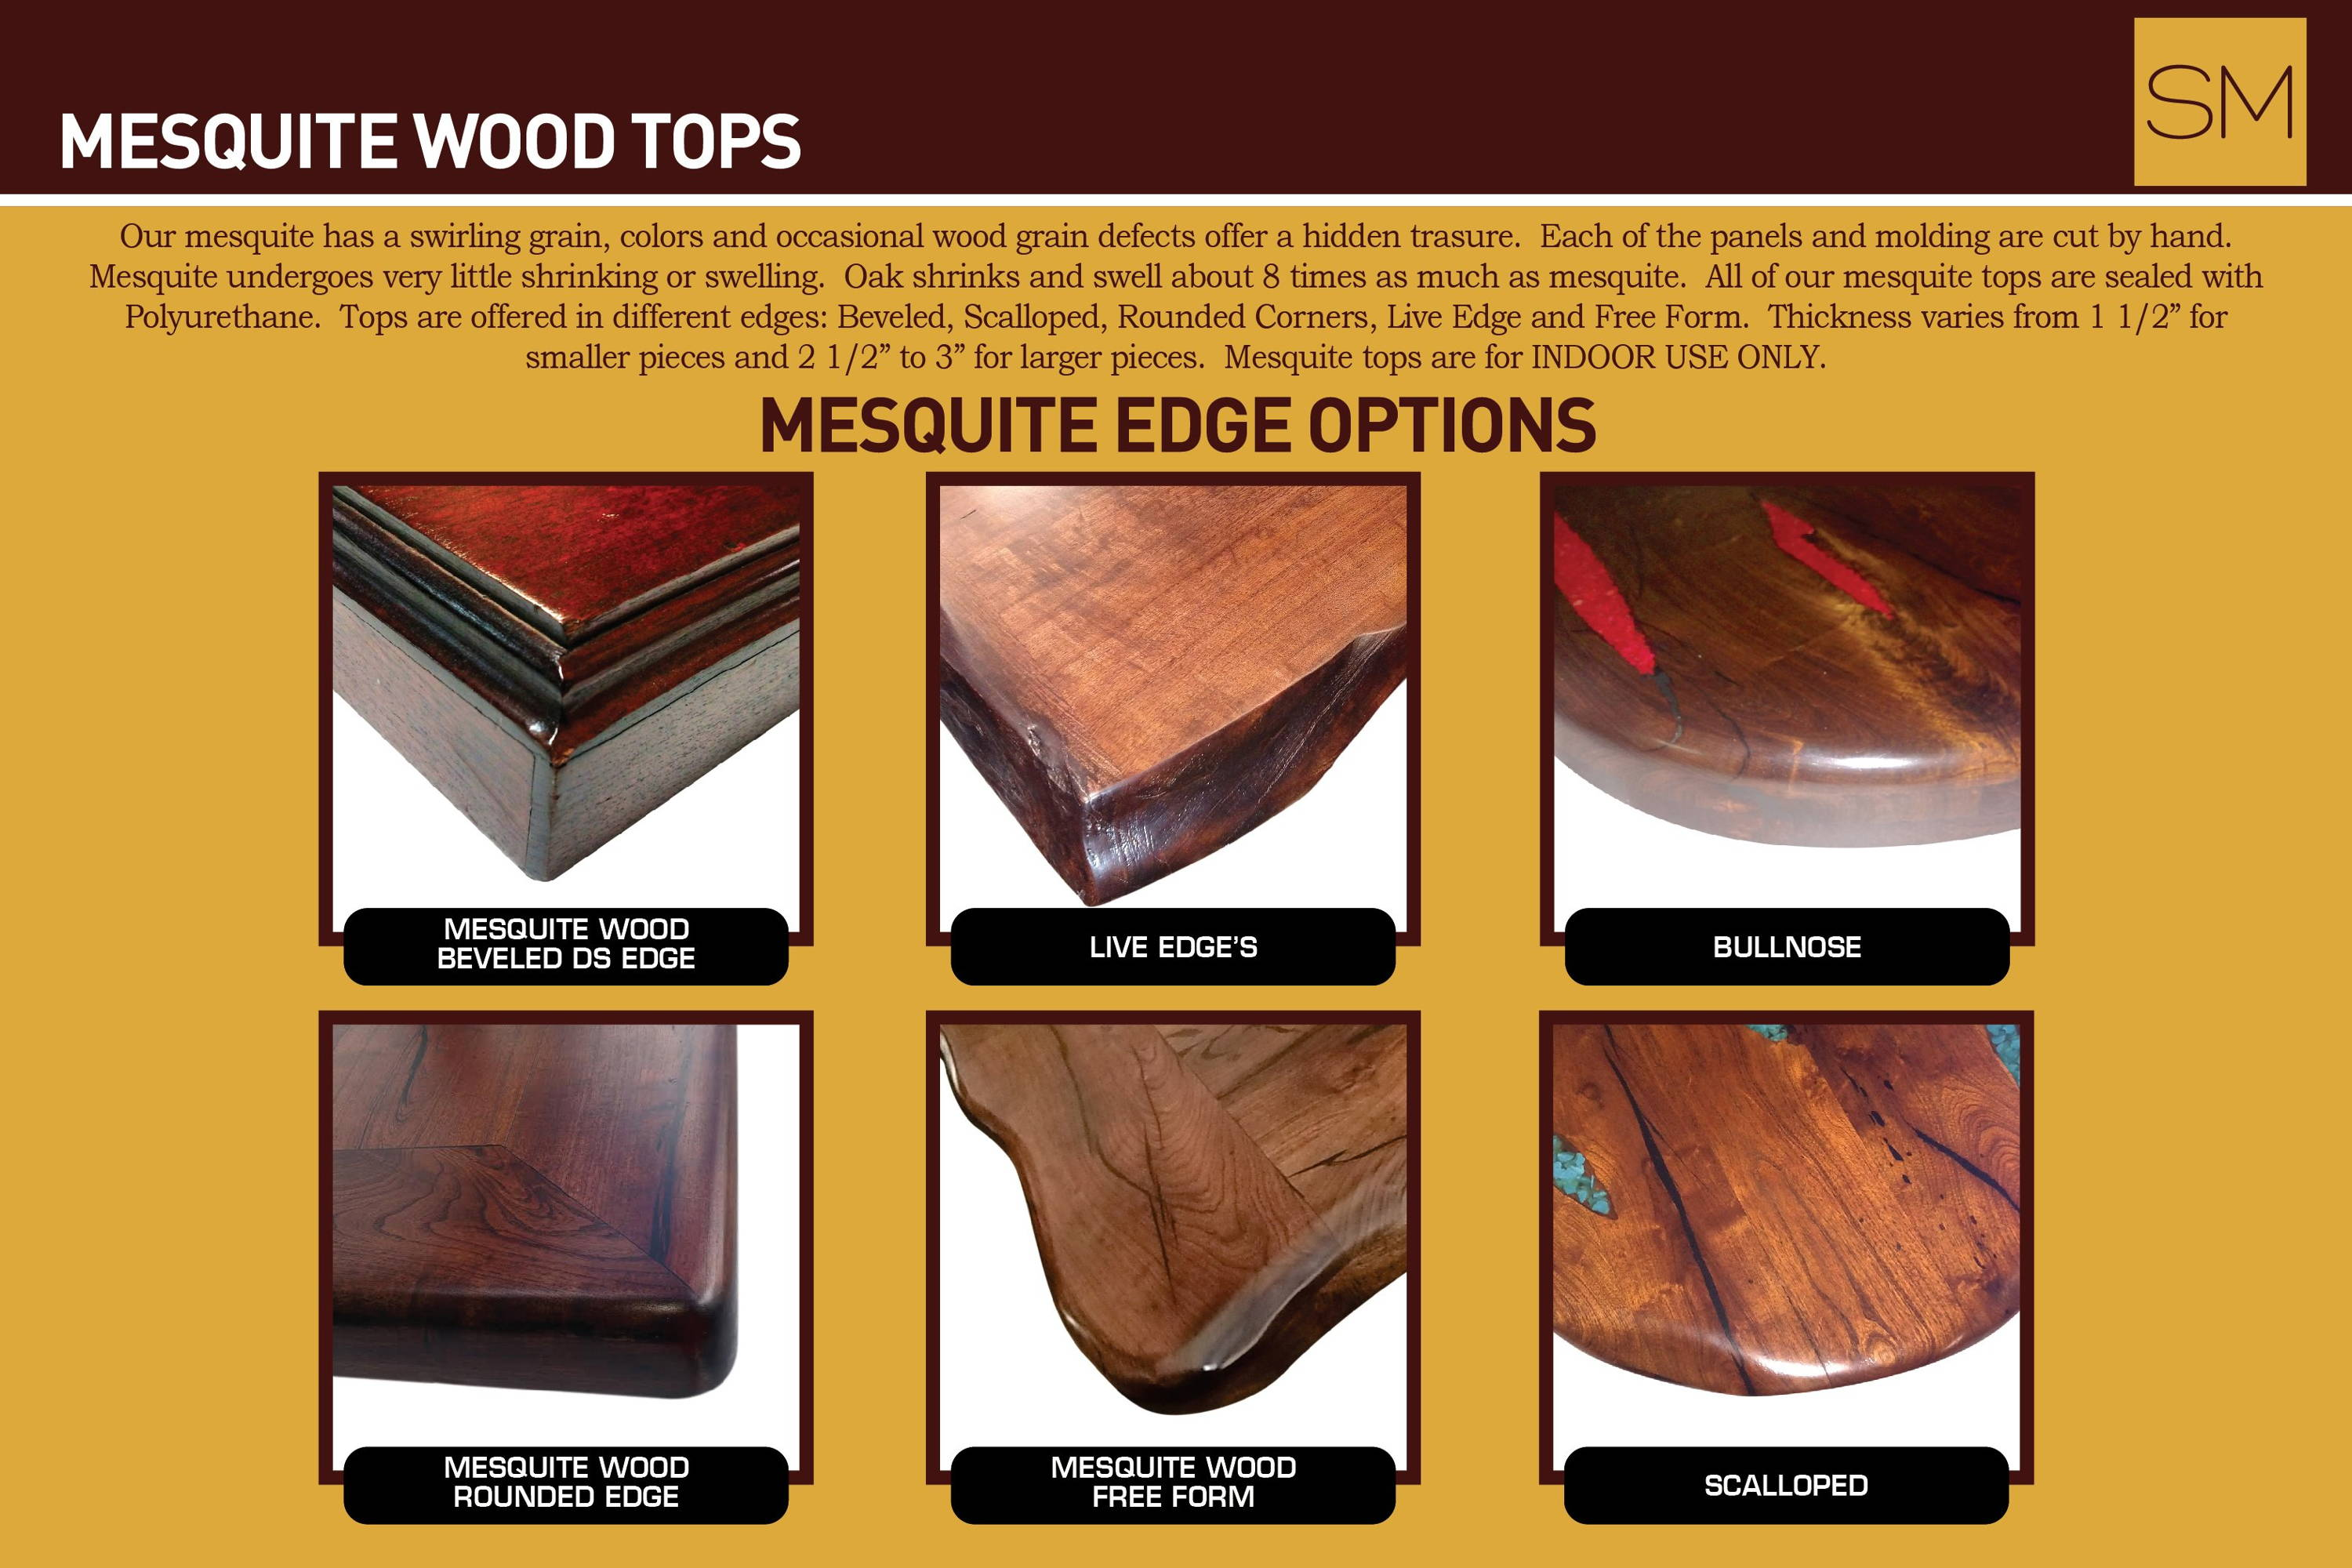 Various mesquite edge options; beveled, live edge, bullnose, rounded edge, free form, and scalloped